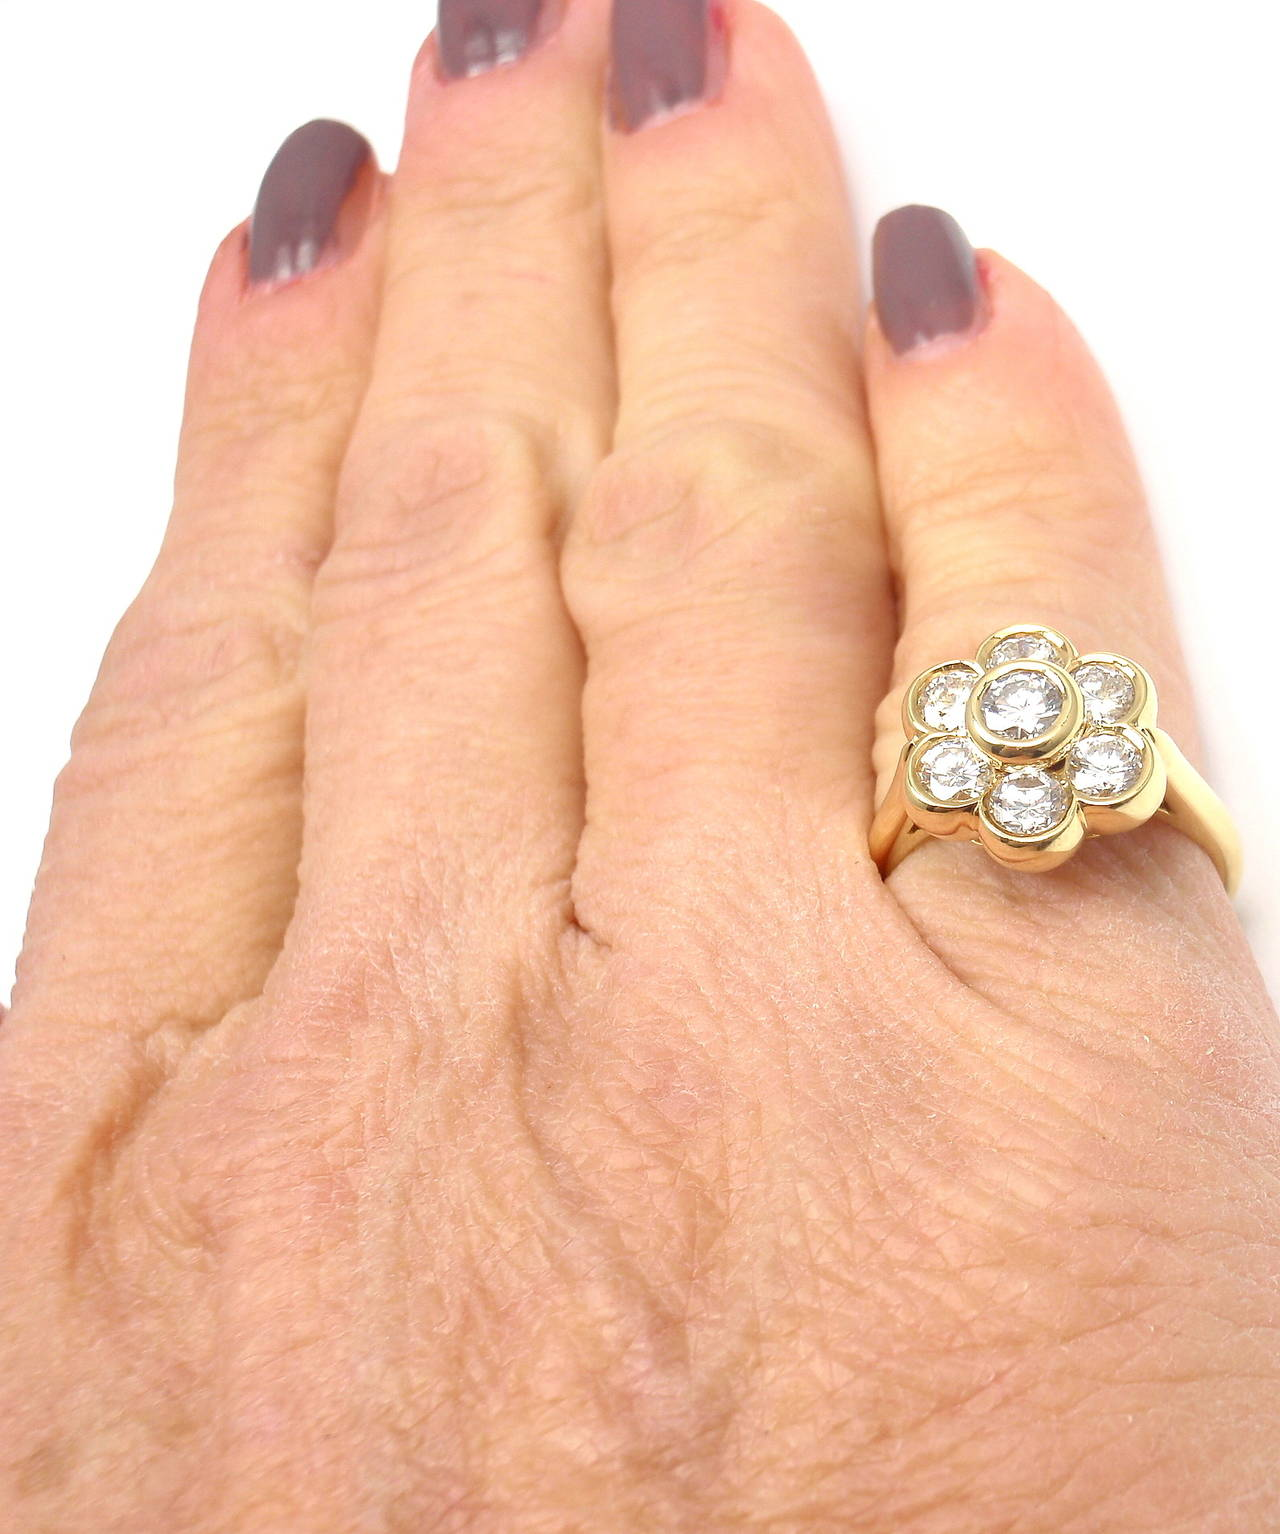 Van Cleef & Arpels Diamond Yellow Gold Fleurette Flower Ring For Sale 5